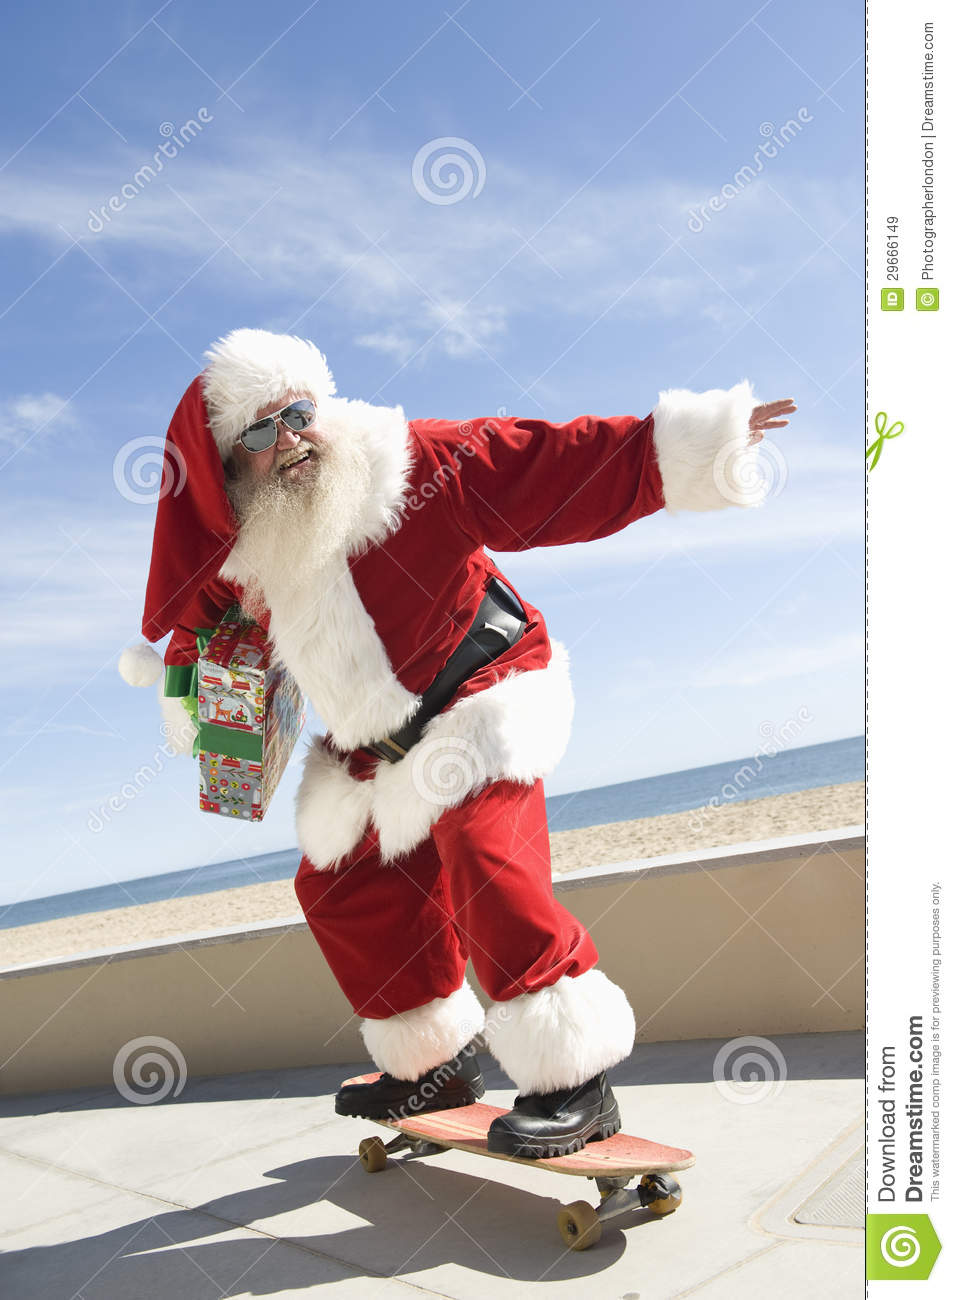 Santa Claus Skateboarding With Gift In Hand Stock Image Click Santa Claus Skateboard